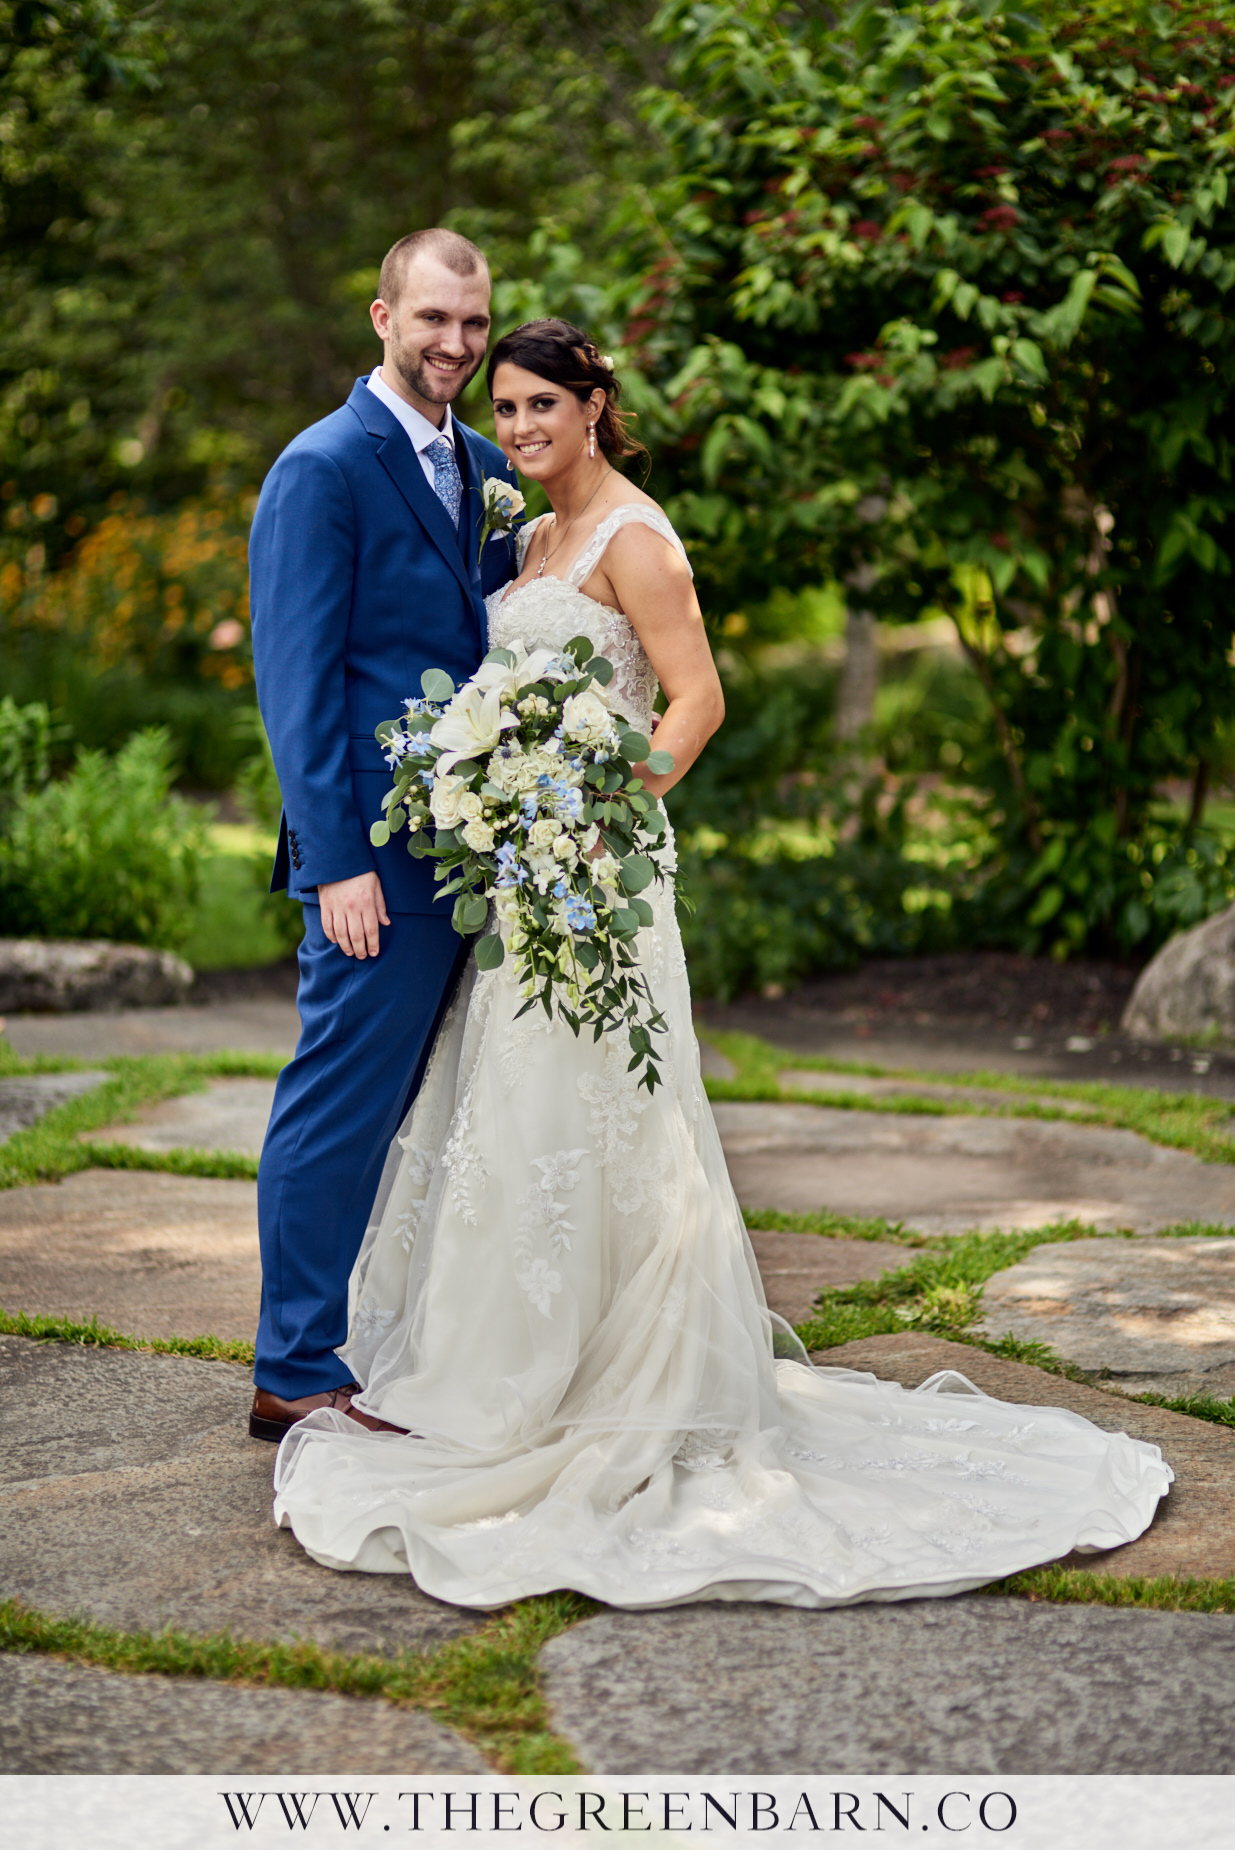 Bride and Groom Portrait at Harrington Farm Photo by Cate Bligh of The Green Barn Wedding Photography LLC